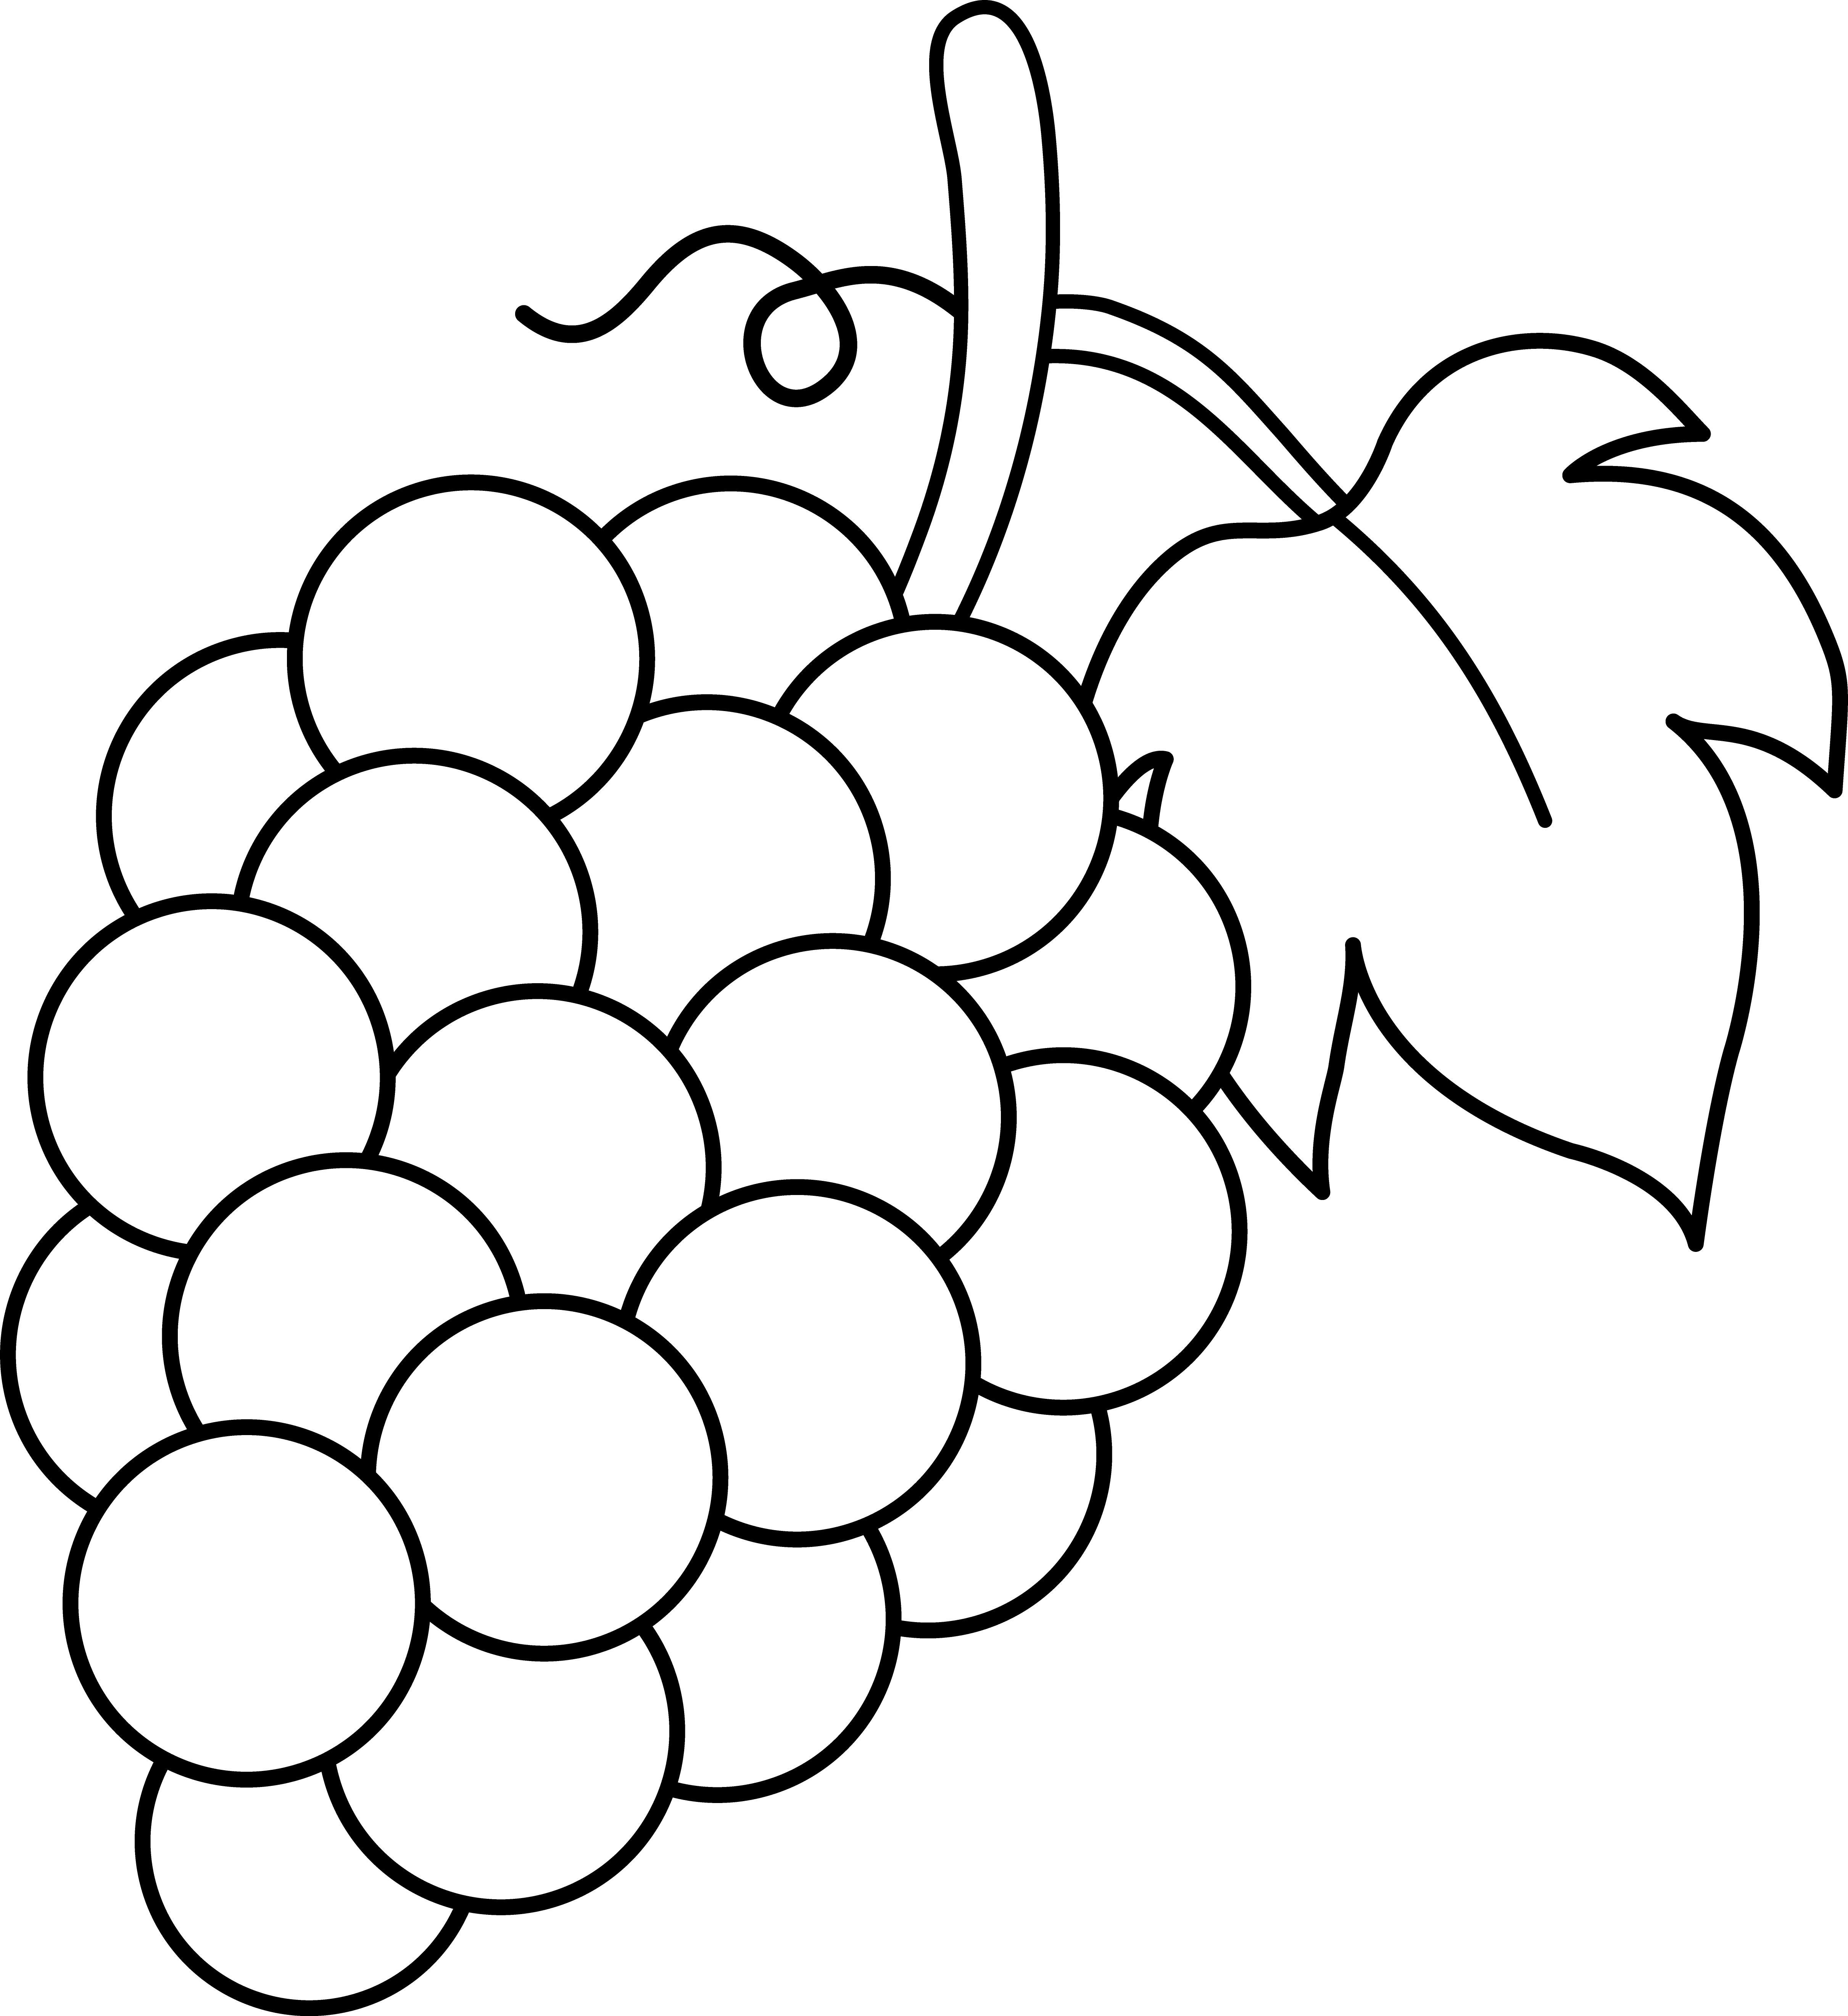 Line Art of a Bunch of Grapes.